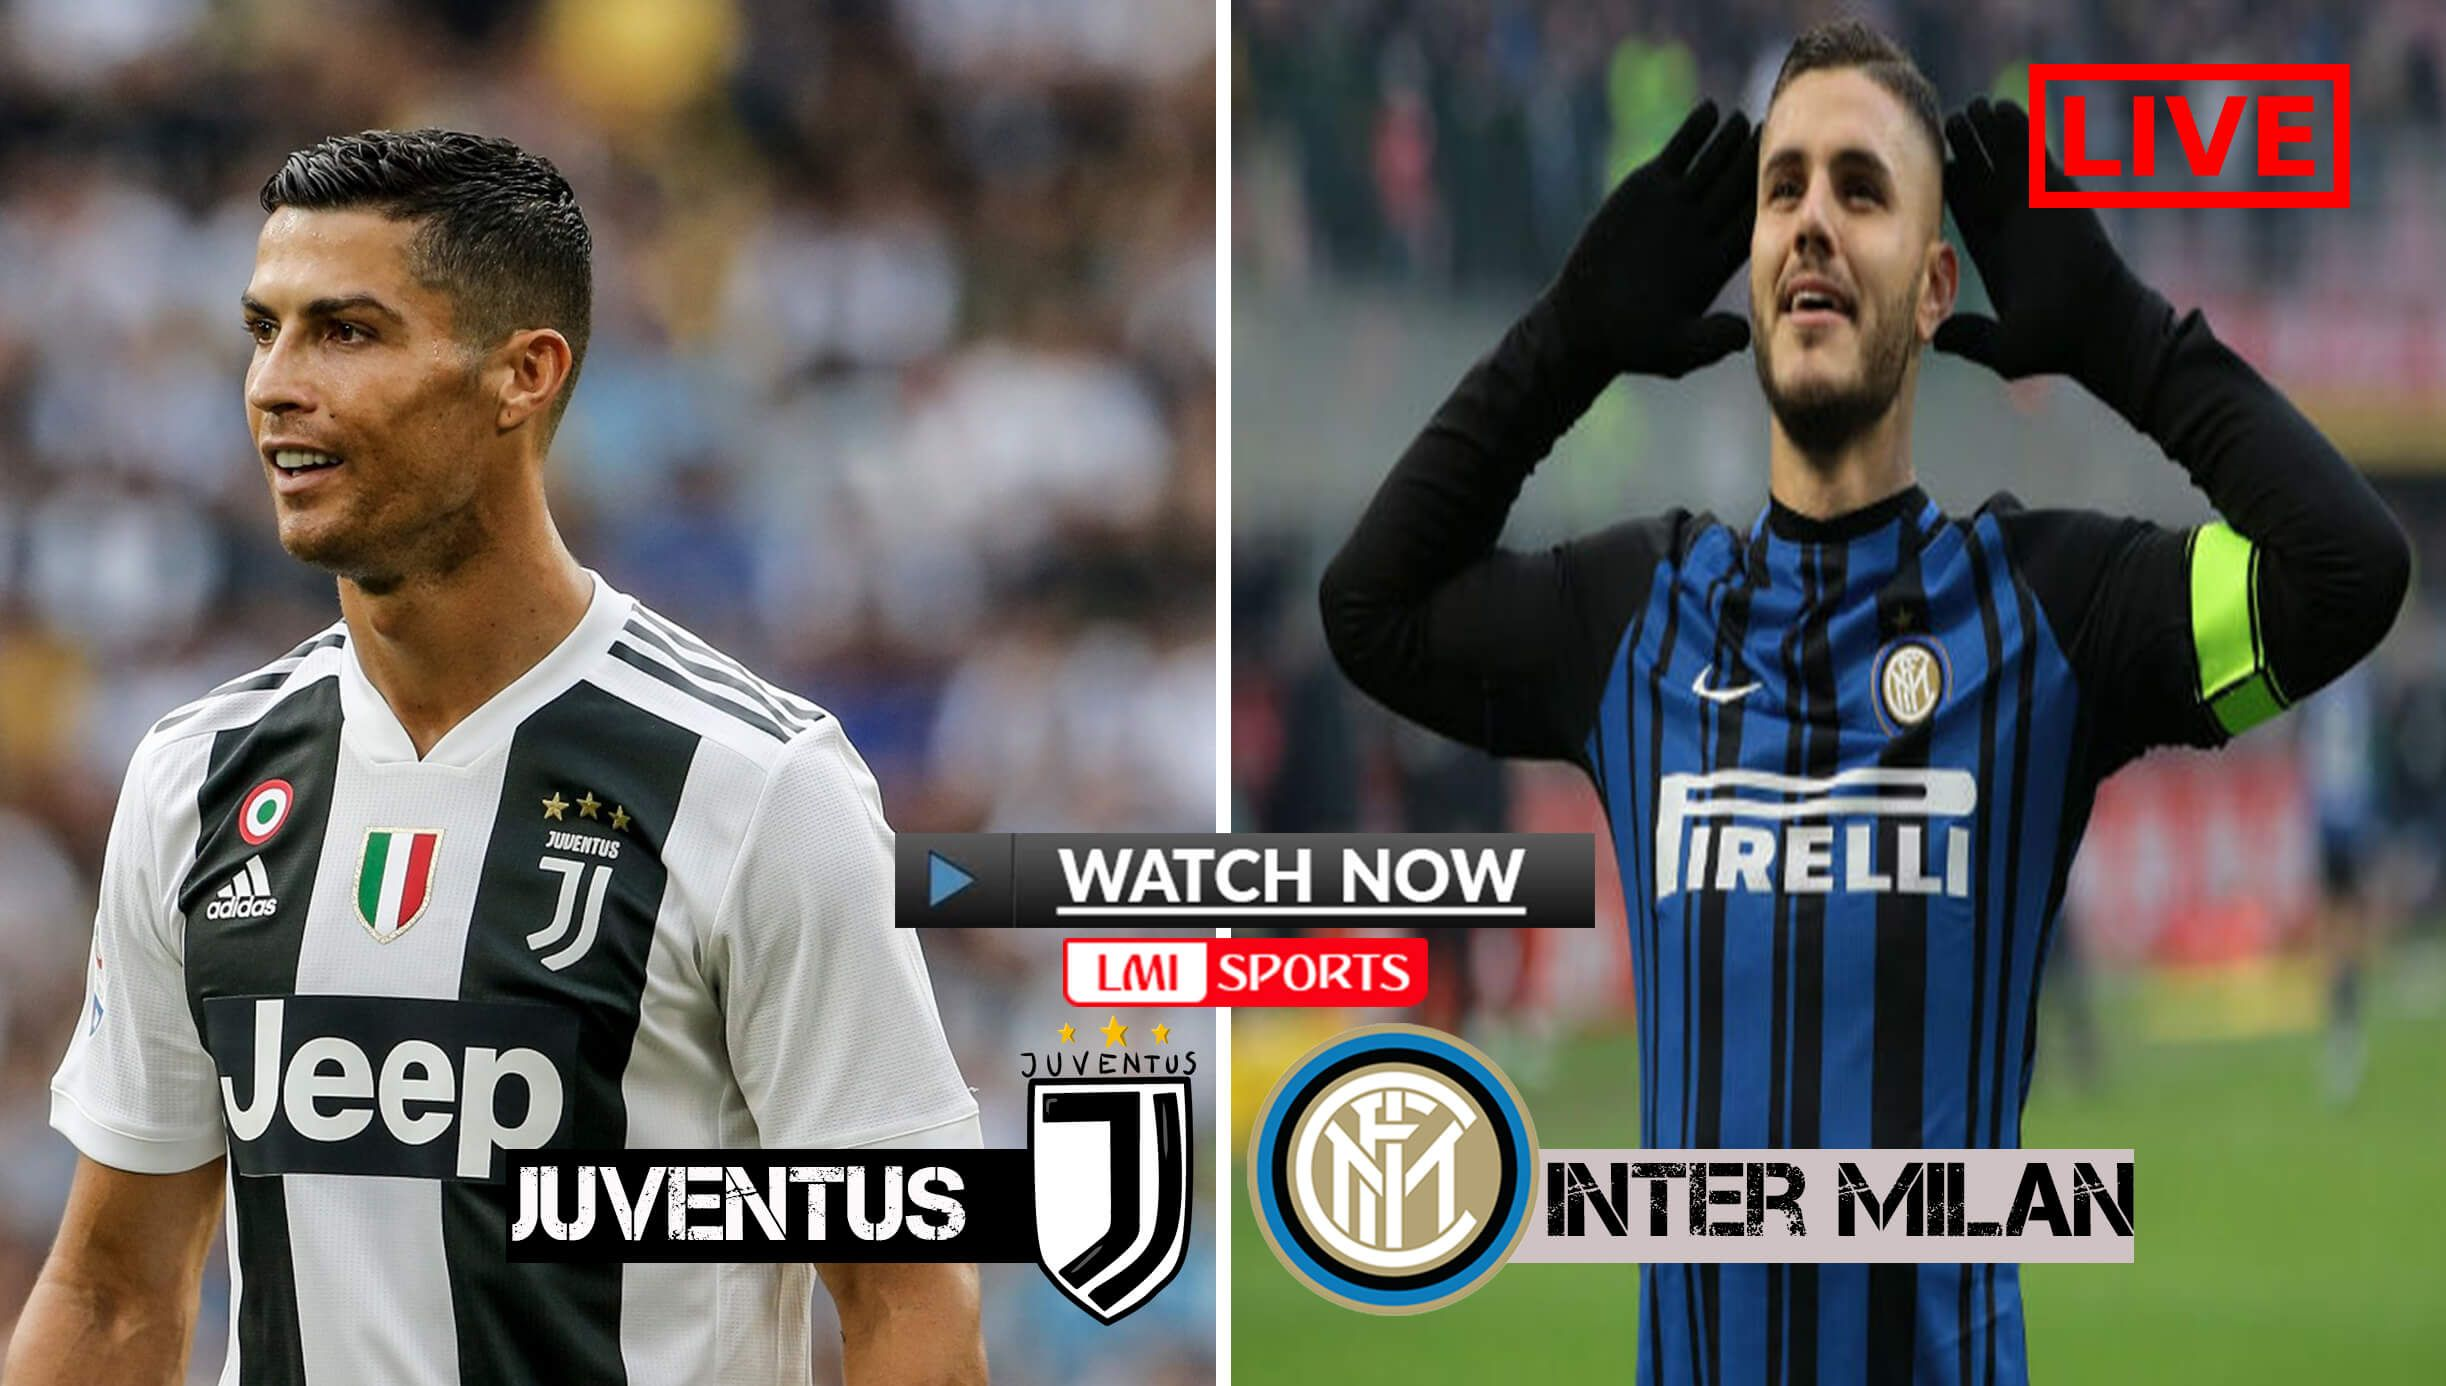 Juventus vs Inter Milan Live Stream Reddit Soccer Streams